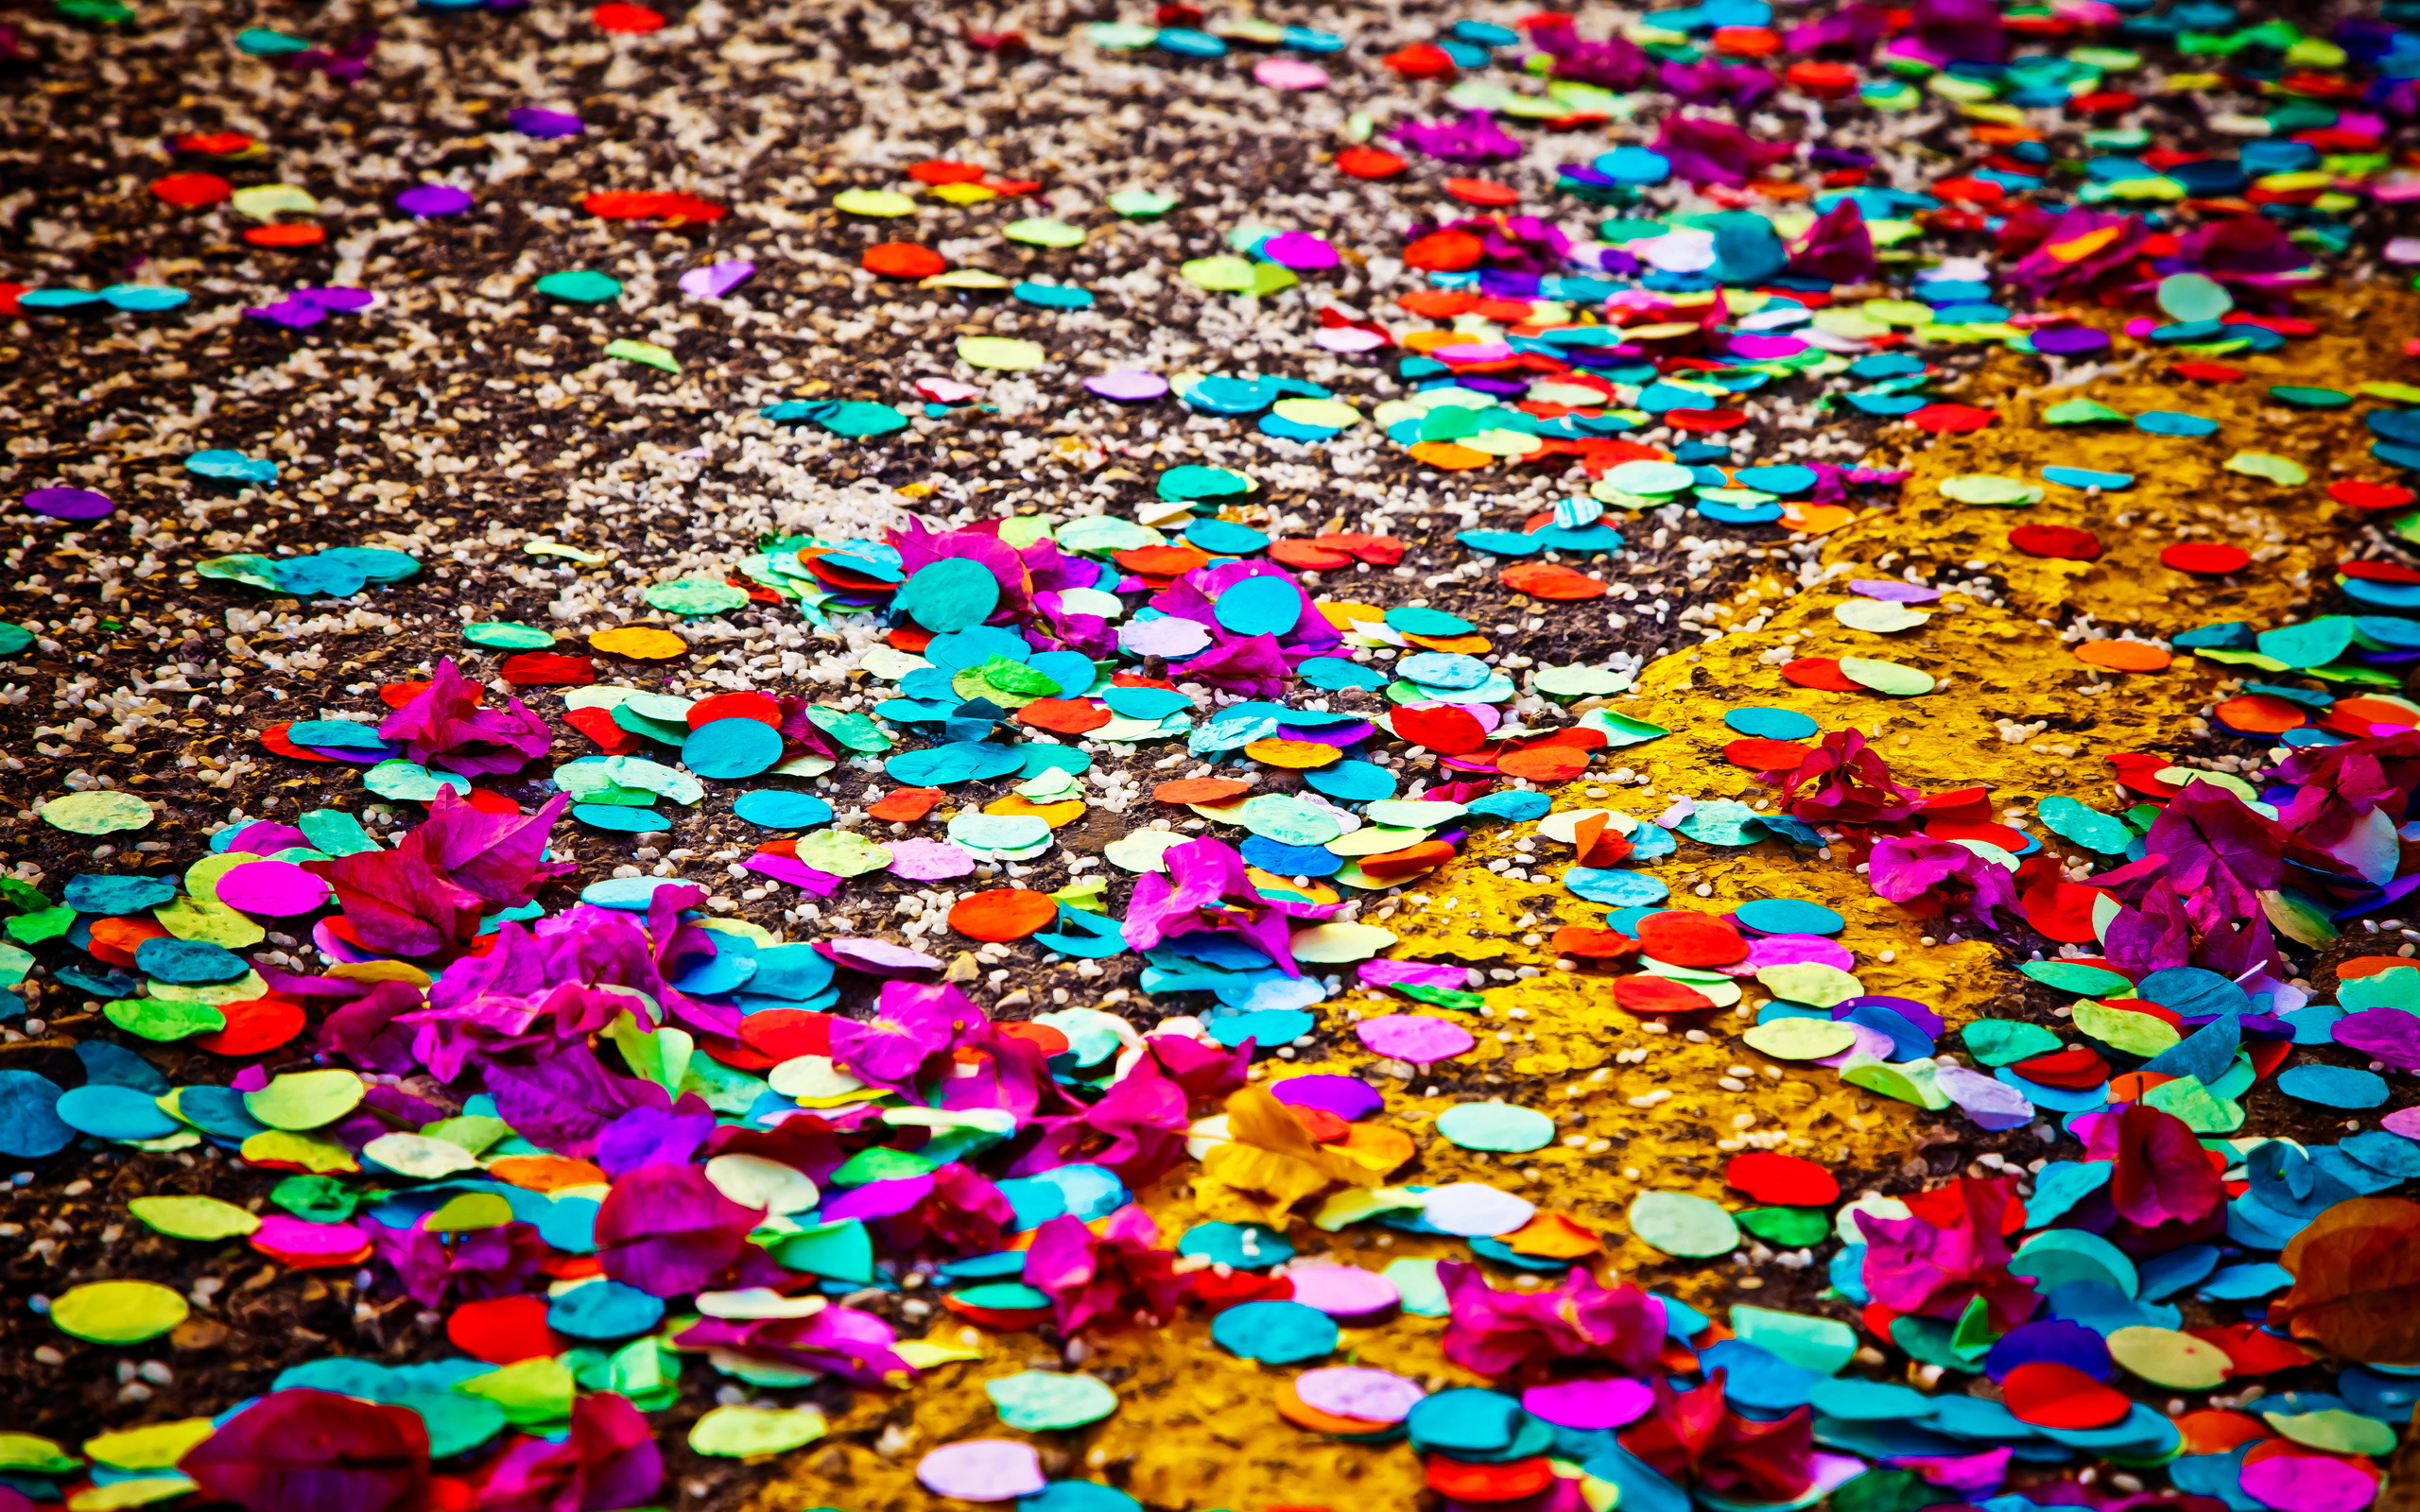 paper confetti Confetti are small pieces or streamers of paper, mylar, or metallic material which are usually thrown at celebrations, especially parades and weddings[1] the origins are from the latin confectum.